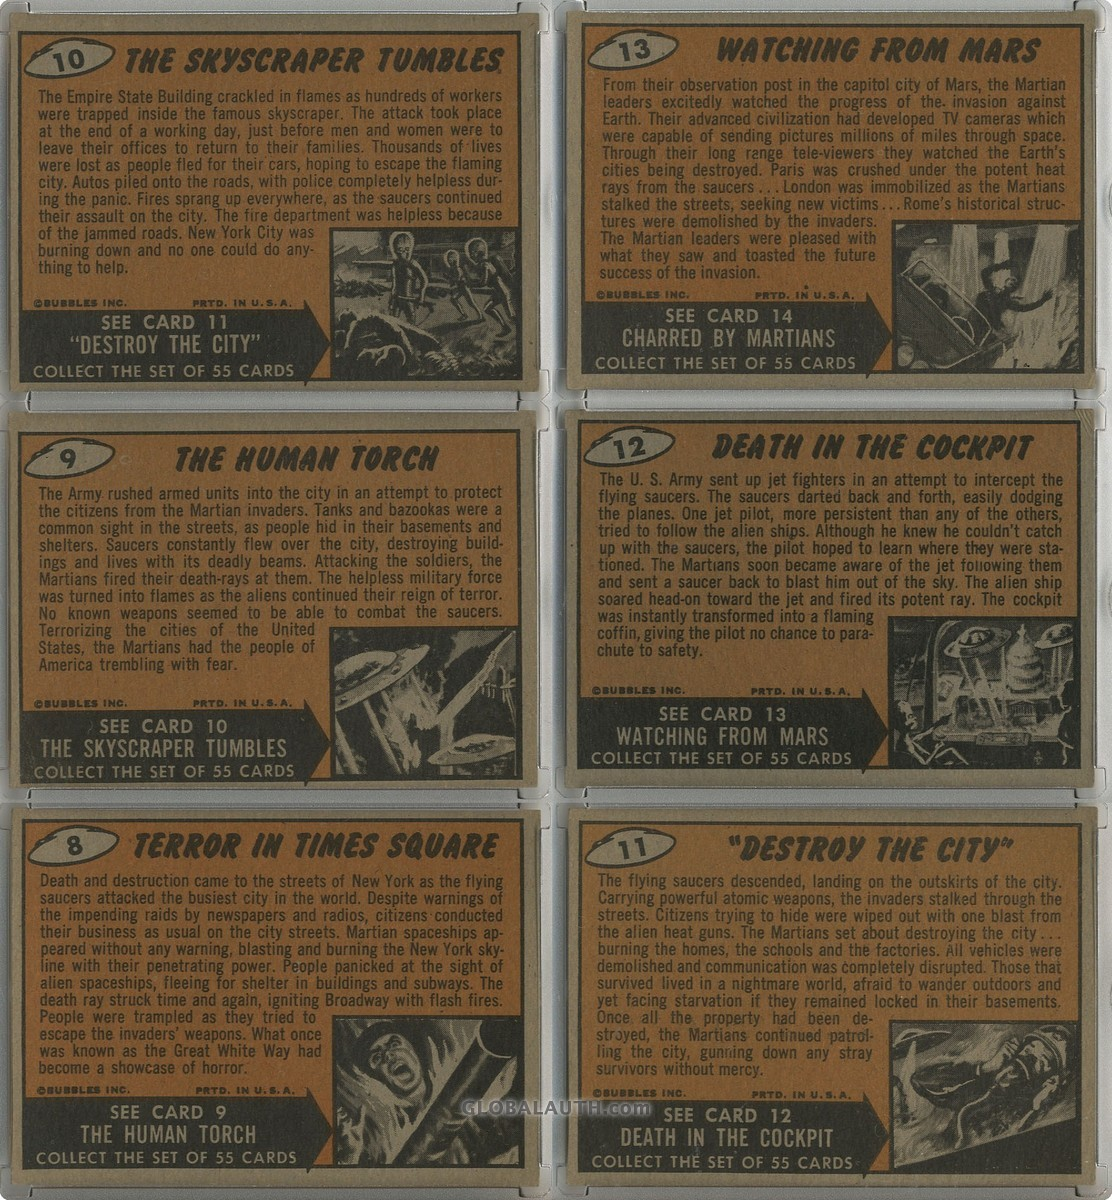 1962-mars-attacks-non-sports-card-set-set-images.jpg, #3